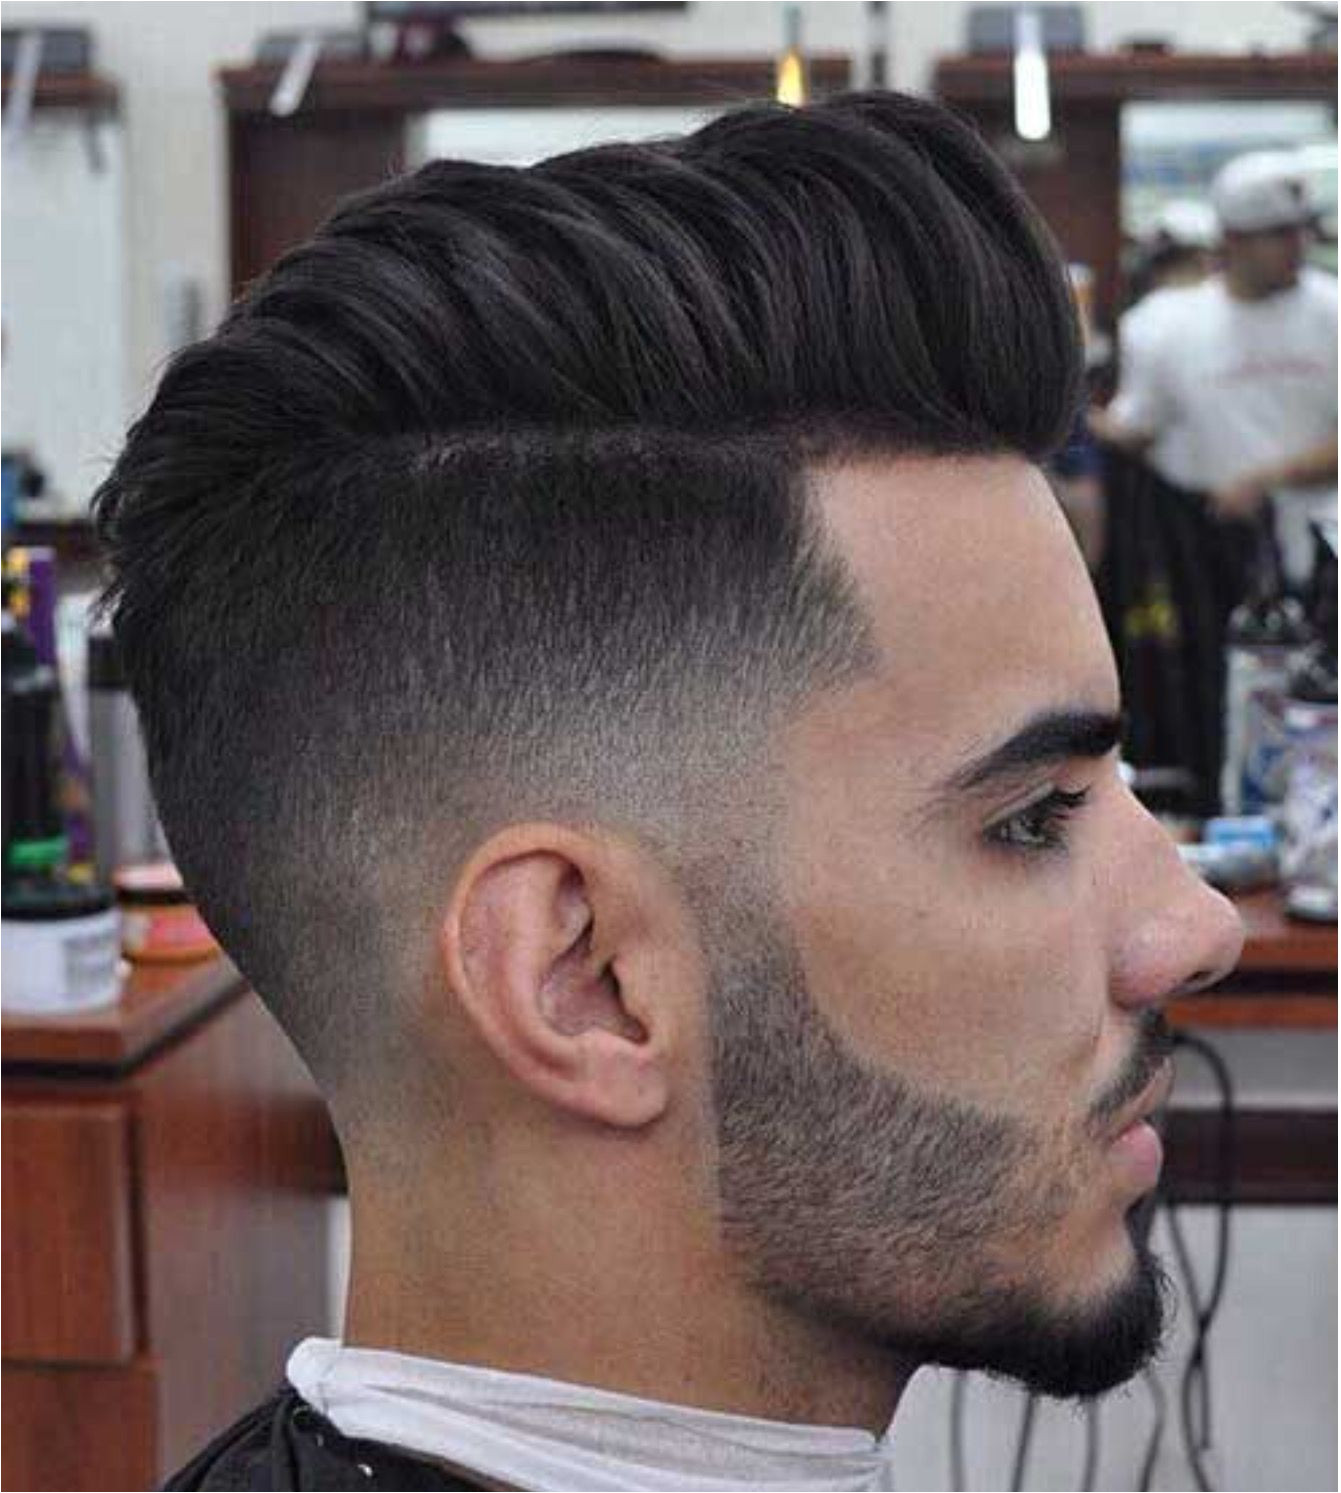 Trendy short haircut all that s missing here is a highly defined part line men s hairstyles 2015 2016